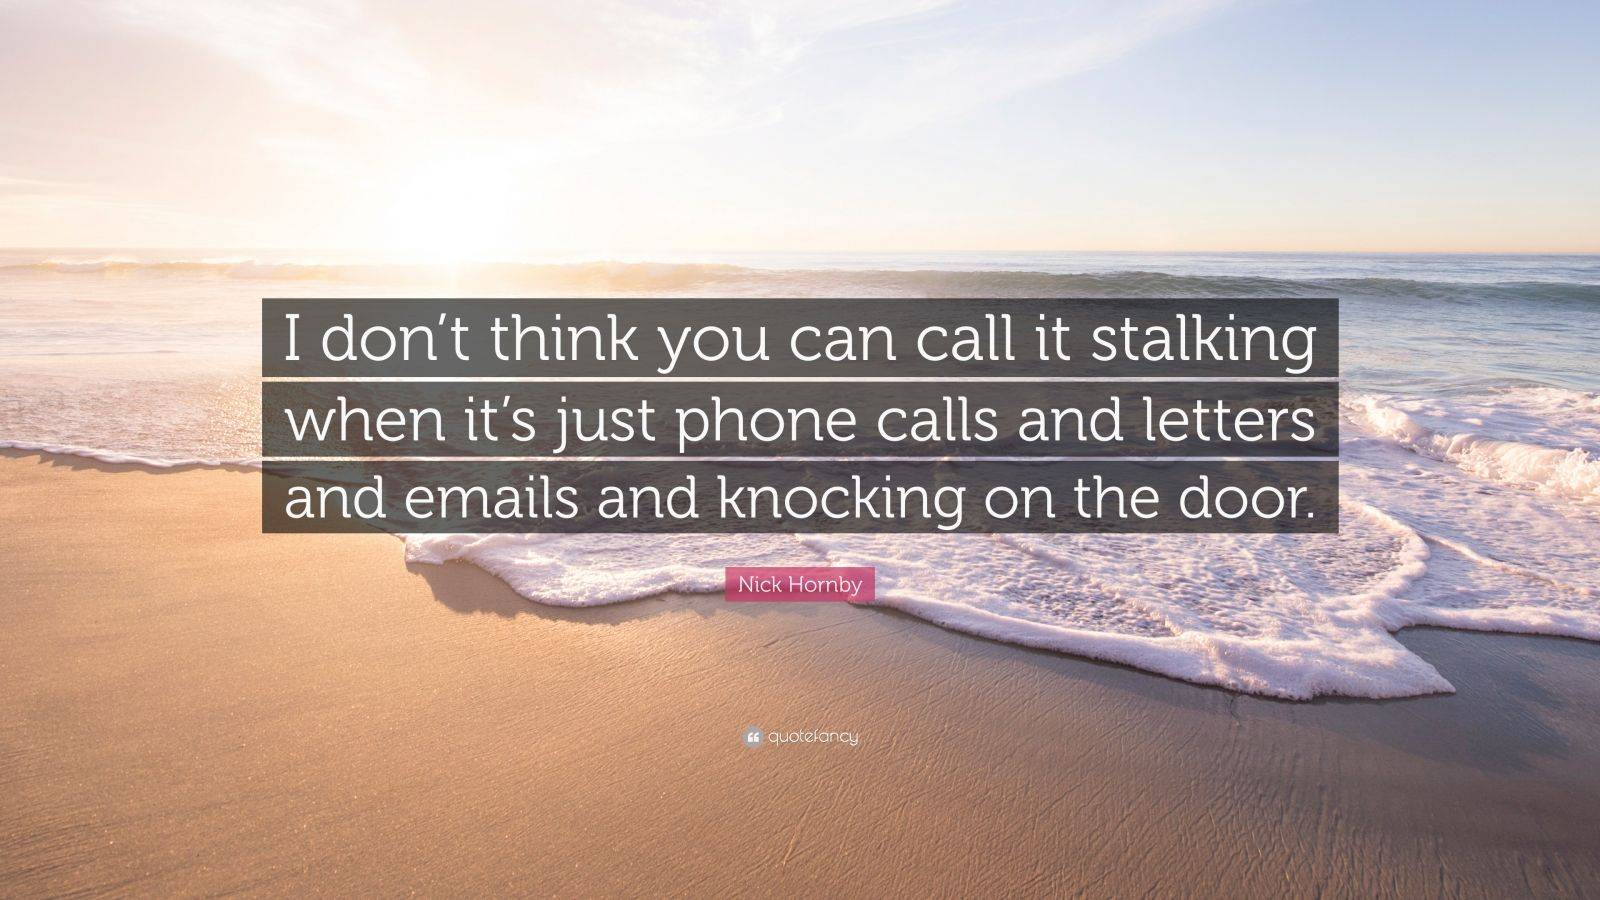 """Nick Hornby Quote: """"I don't think you can call it stalking when it's just phone calls and letters and emails and knocking on the door."""""""